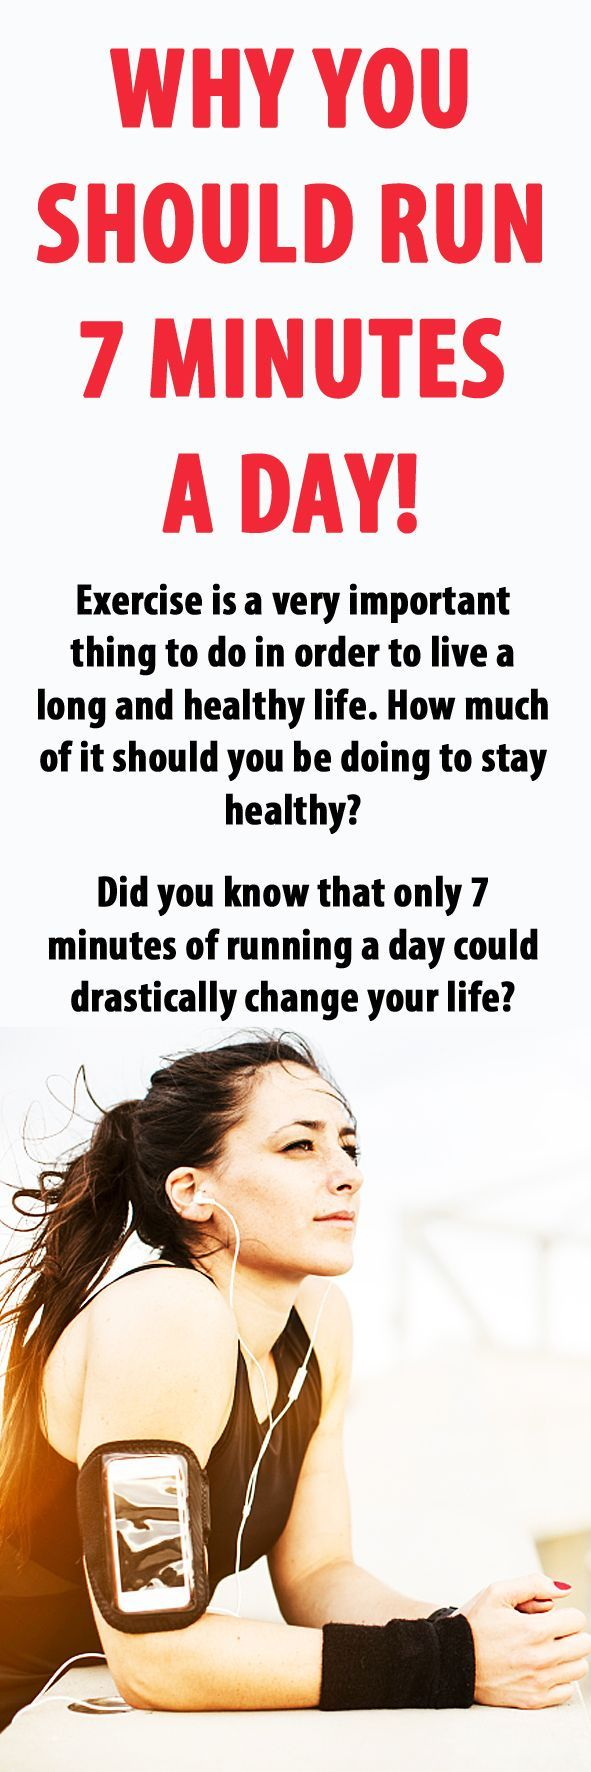 This is why you should run 7 minutes a day!